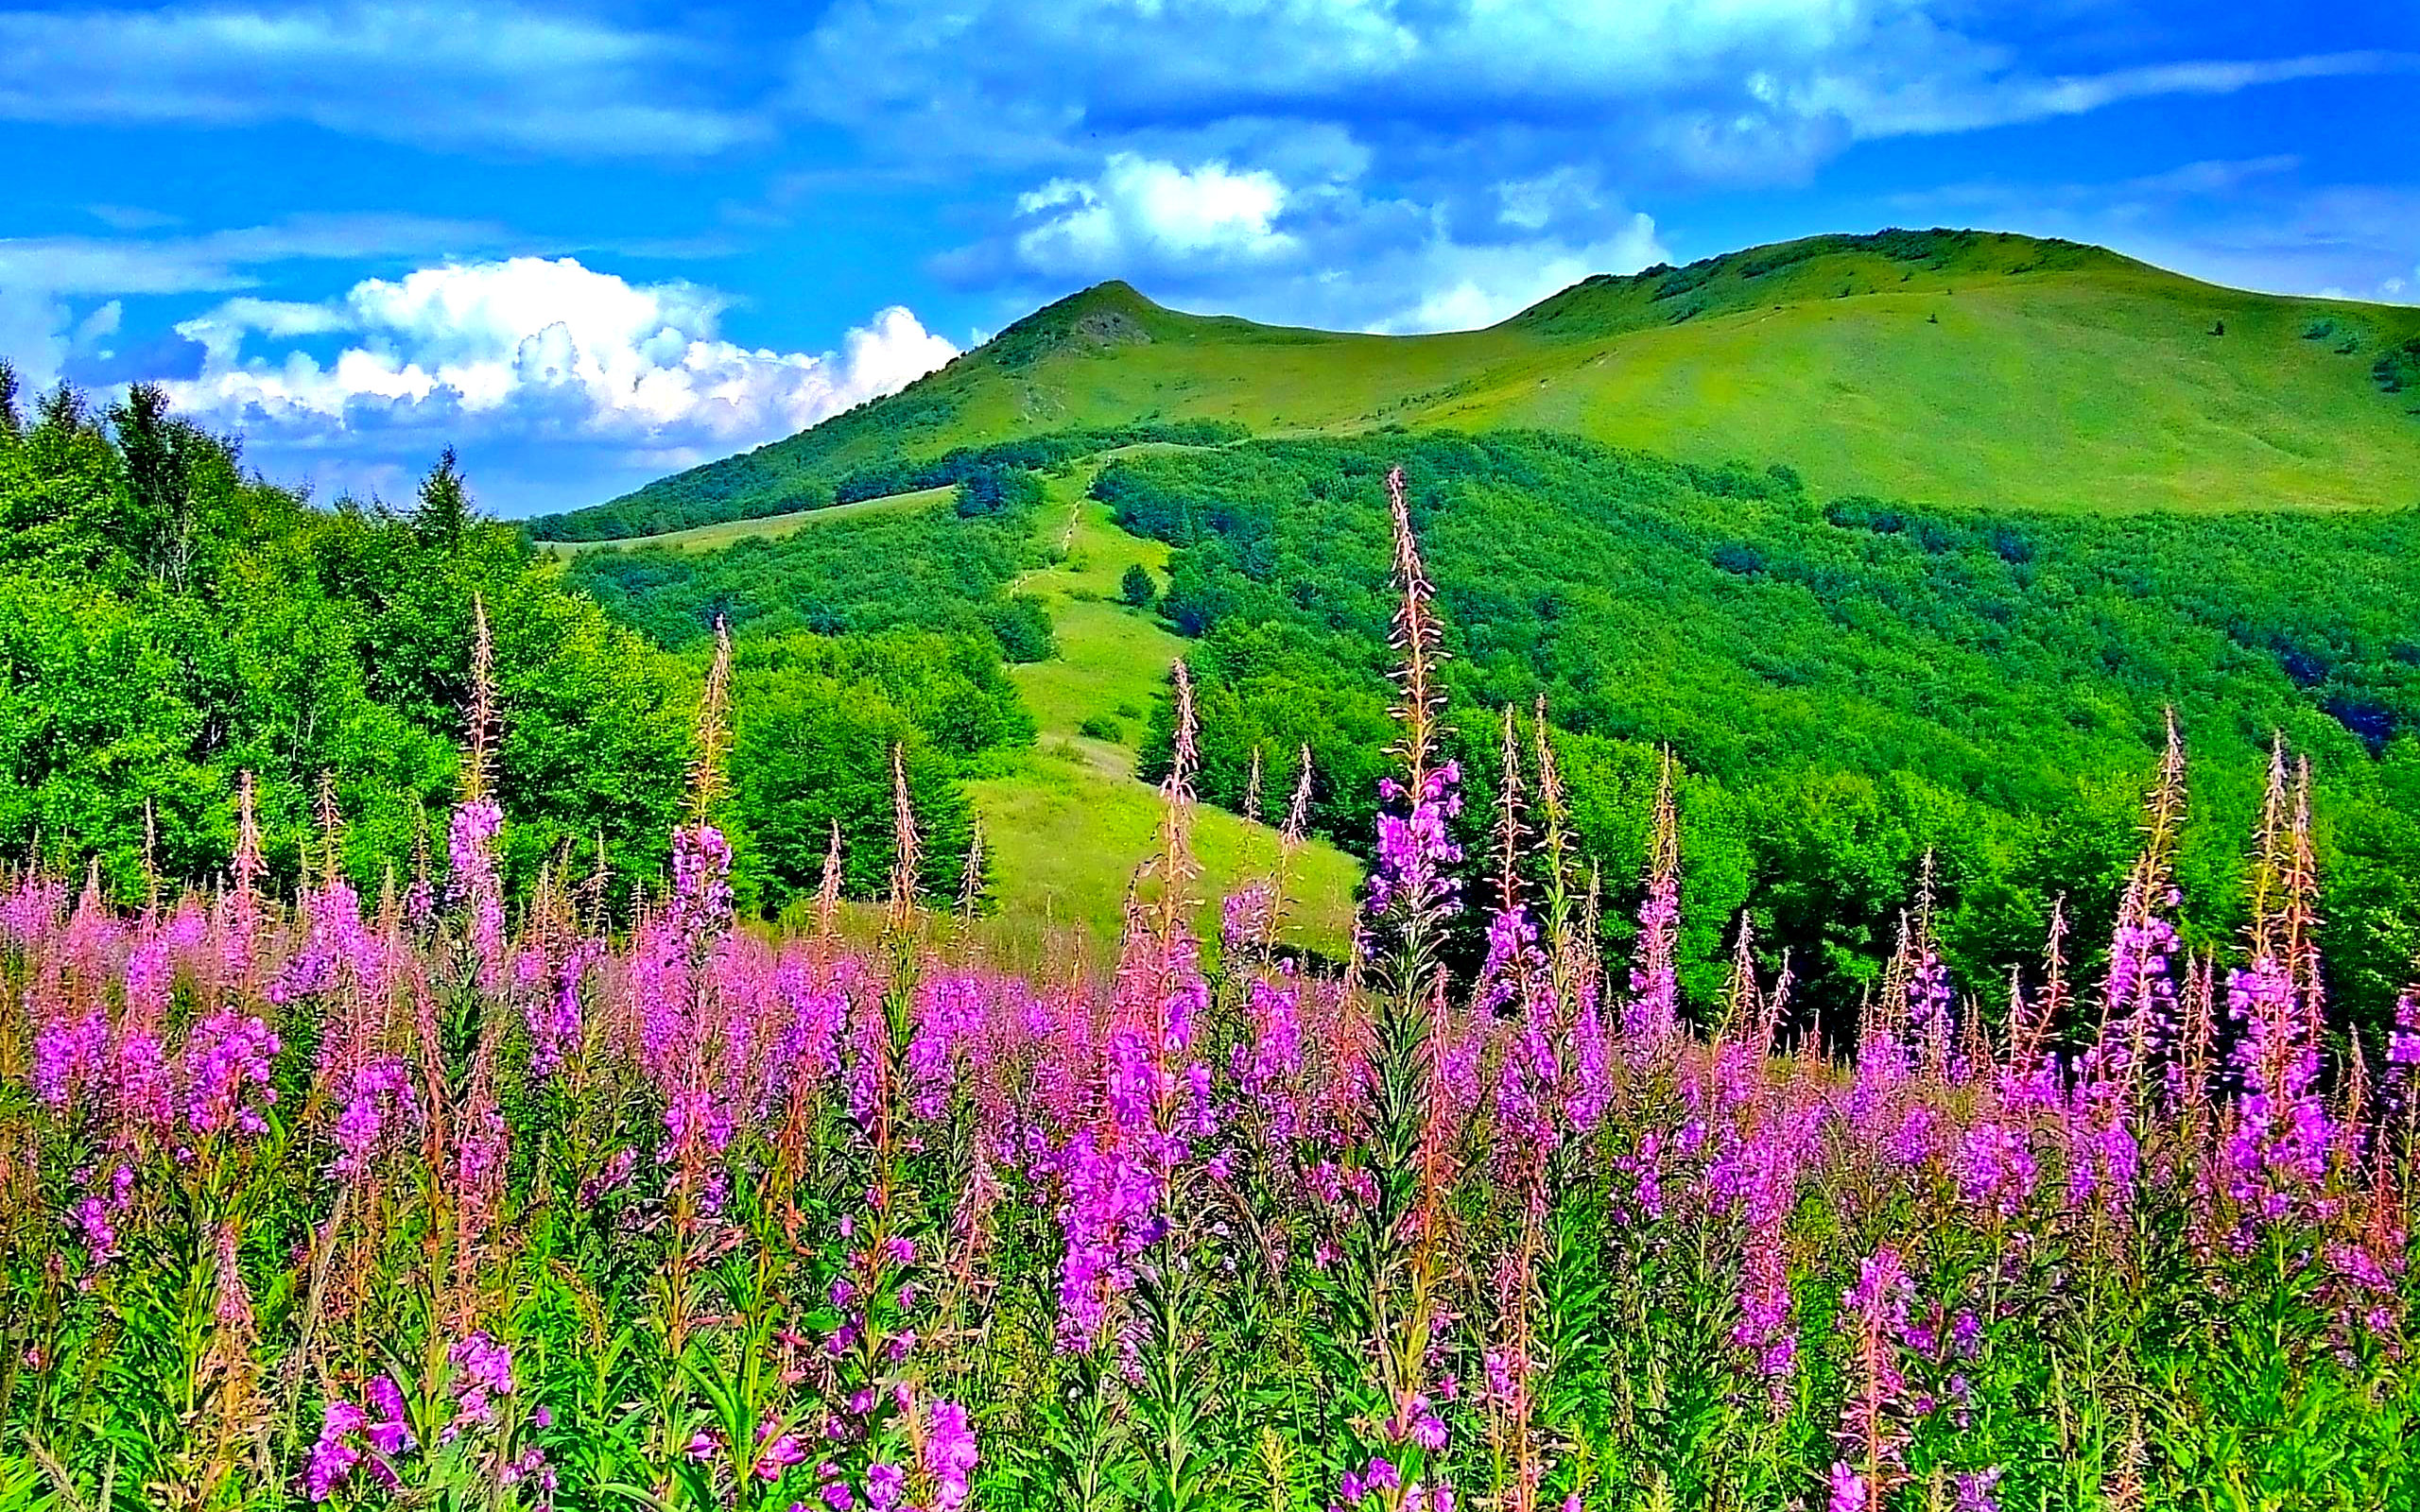 Spring Landscape Wallpapers The Art Mad Wallpapers 2560x1600